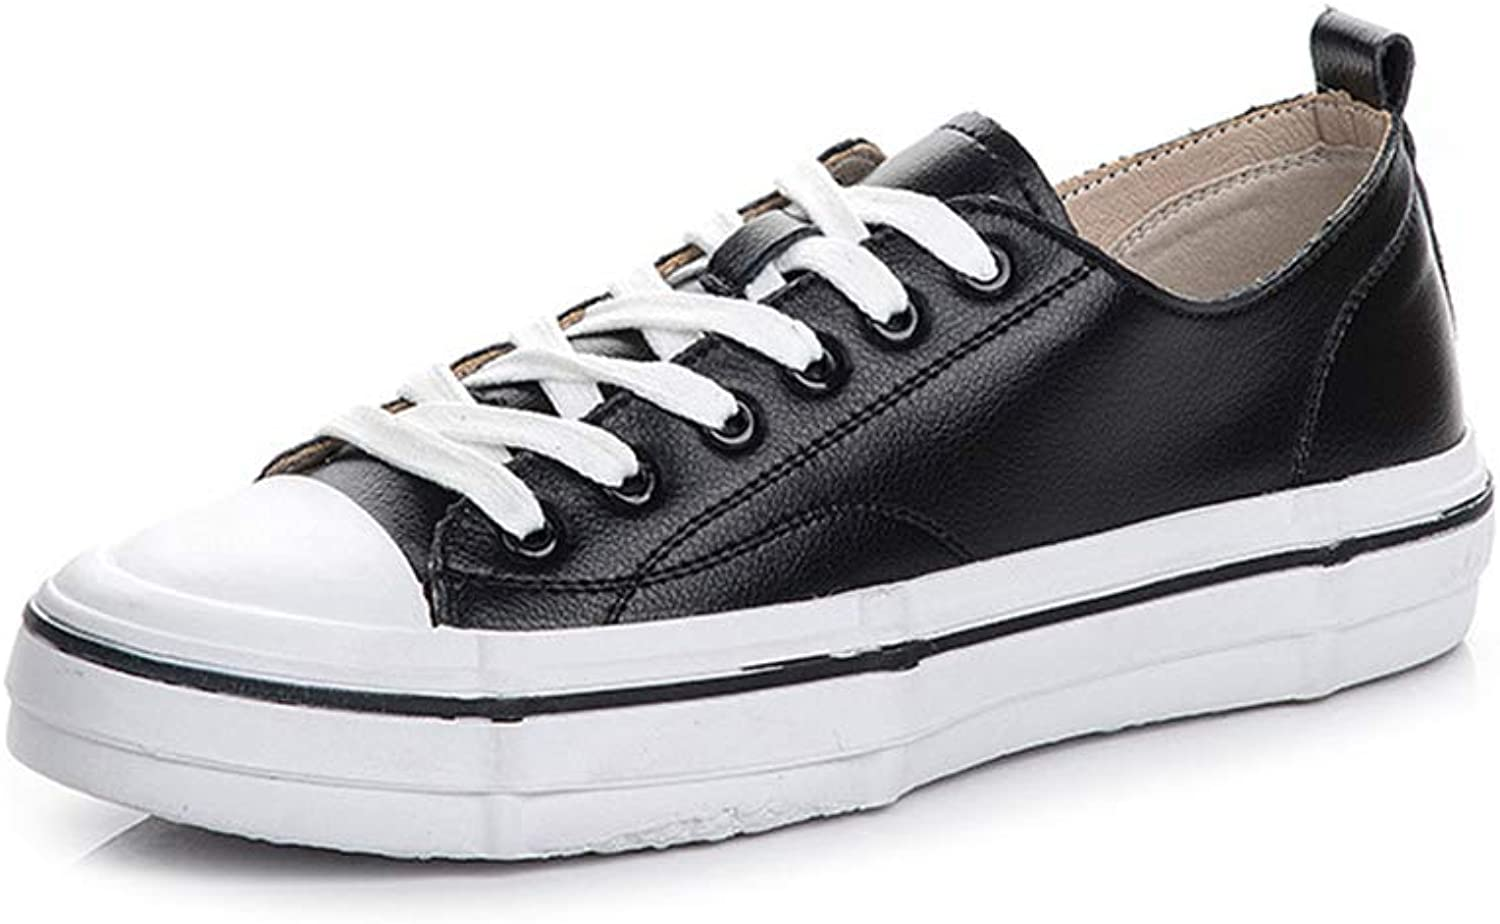 Women's shoes Classic Spring Fall Leather Sports shoes Lace Up Low-Top Casual shoes Deck shoes Fitness & Cross Training shoes,Black,38